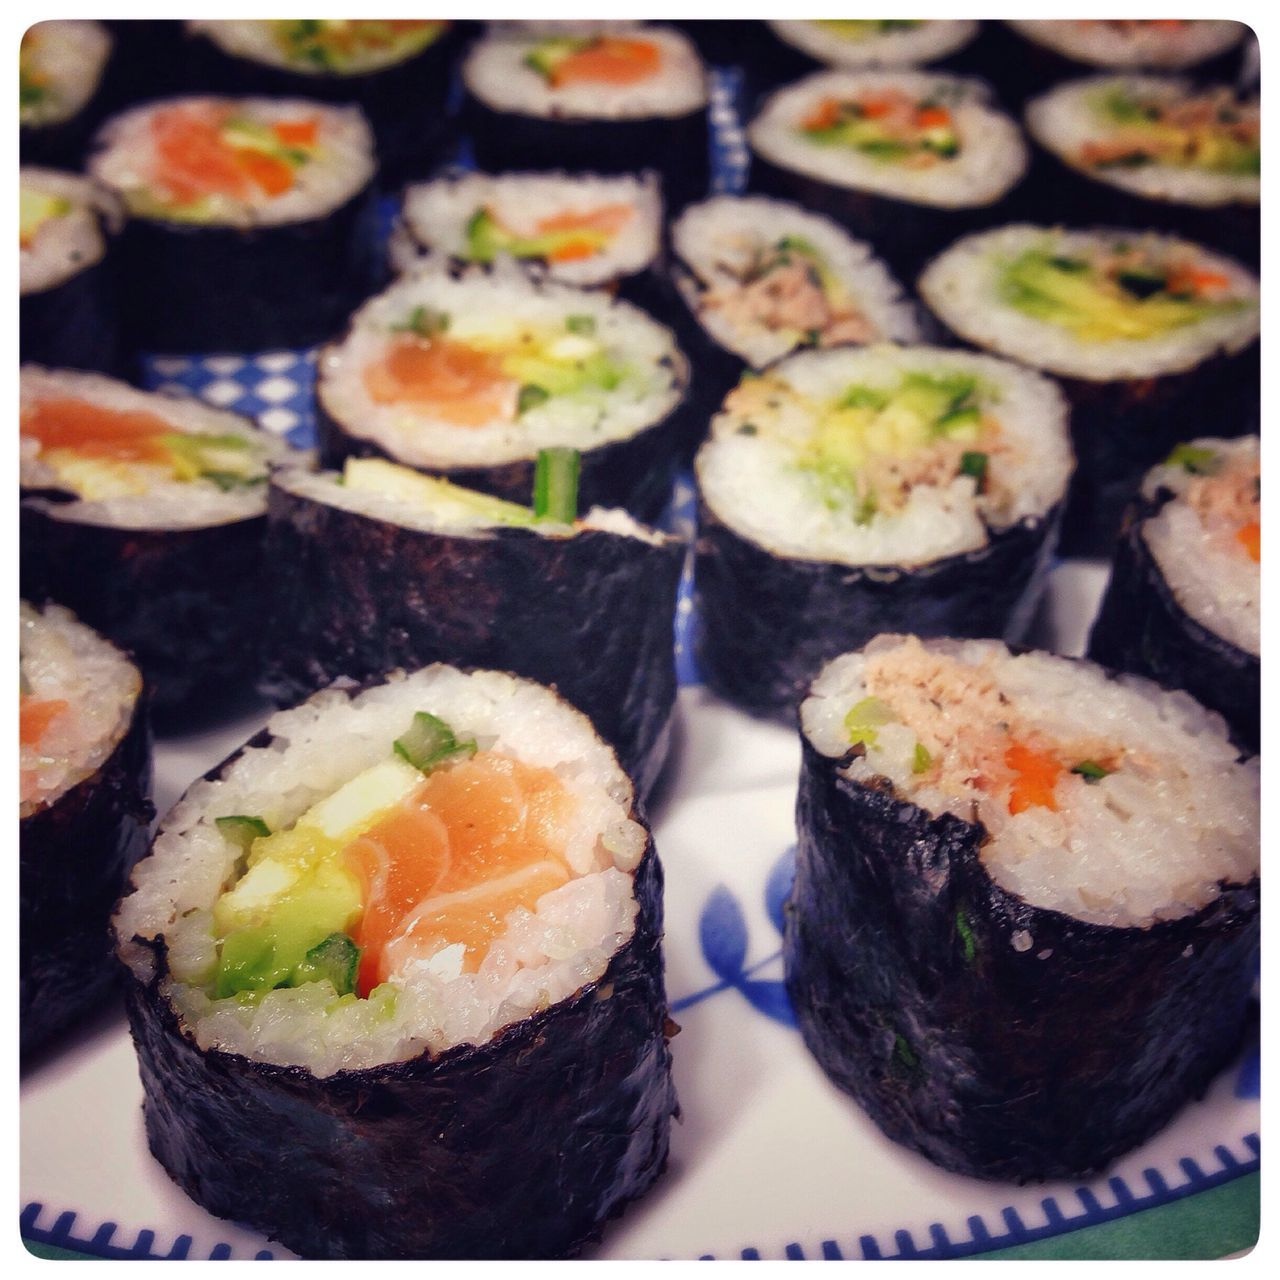 Selfmade sushi Sushi Selfmade DIY Sushilove Sushilover Home Is Where The Art Is Colour Of Life Visual Feast